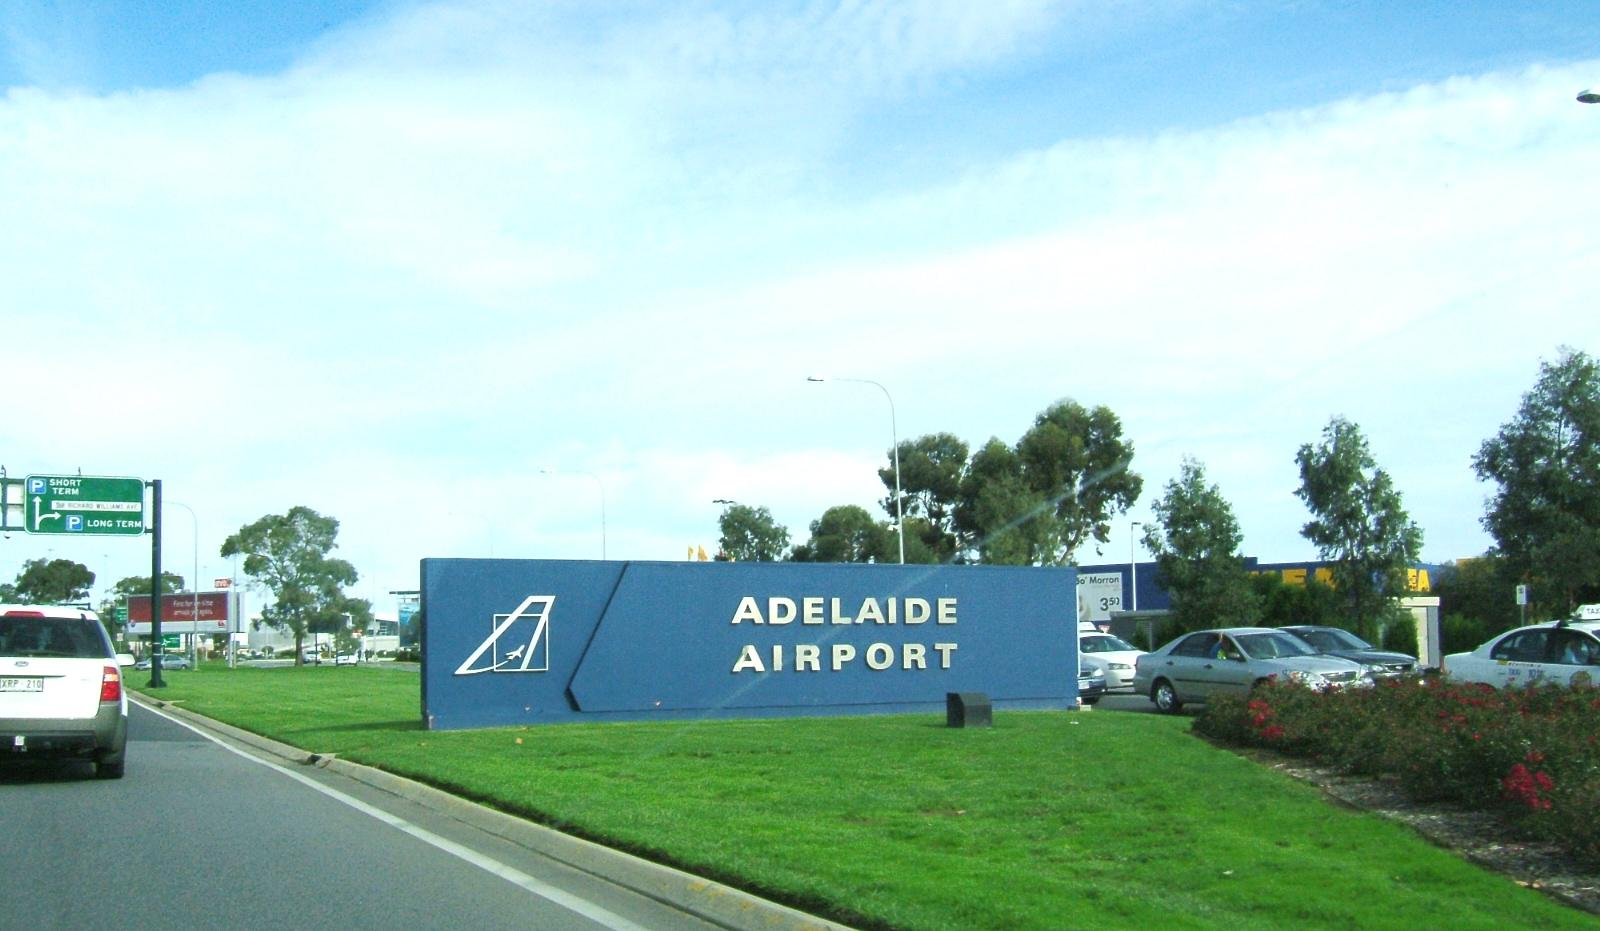 Adelaide Airport is the main international airport serving Adelaide and South Australia.